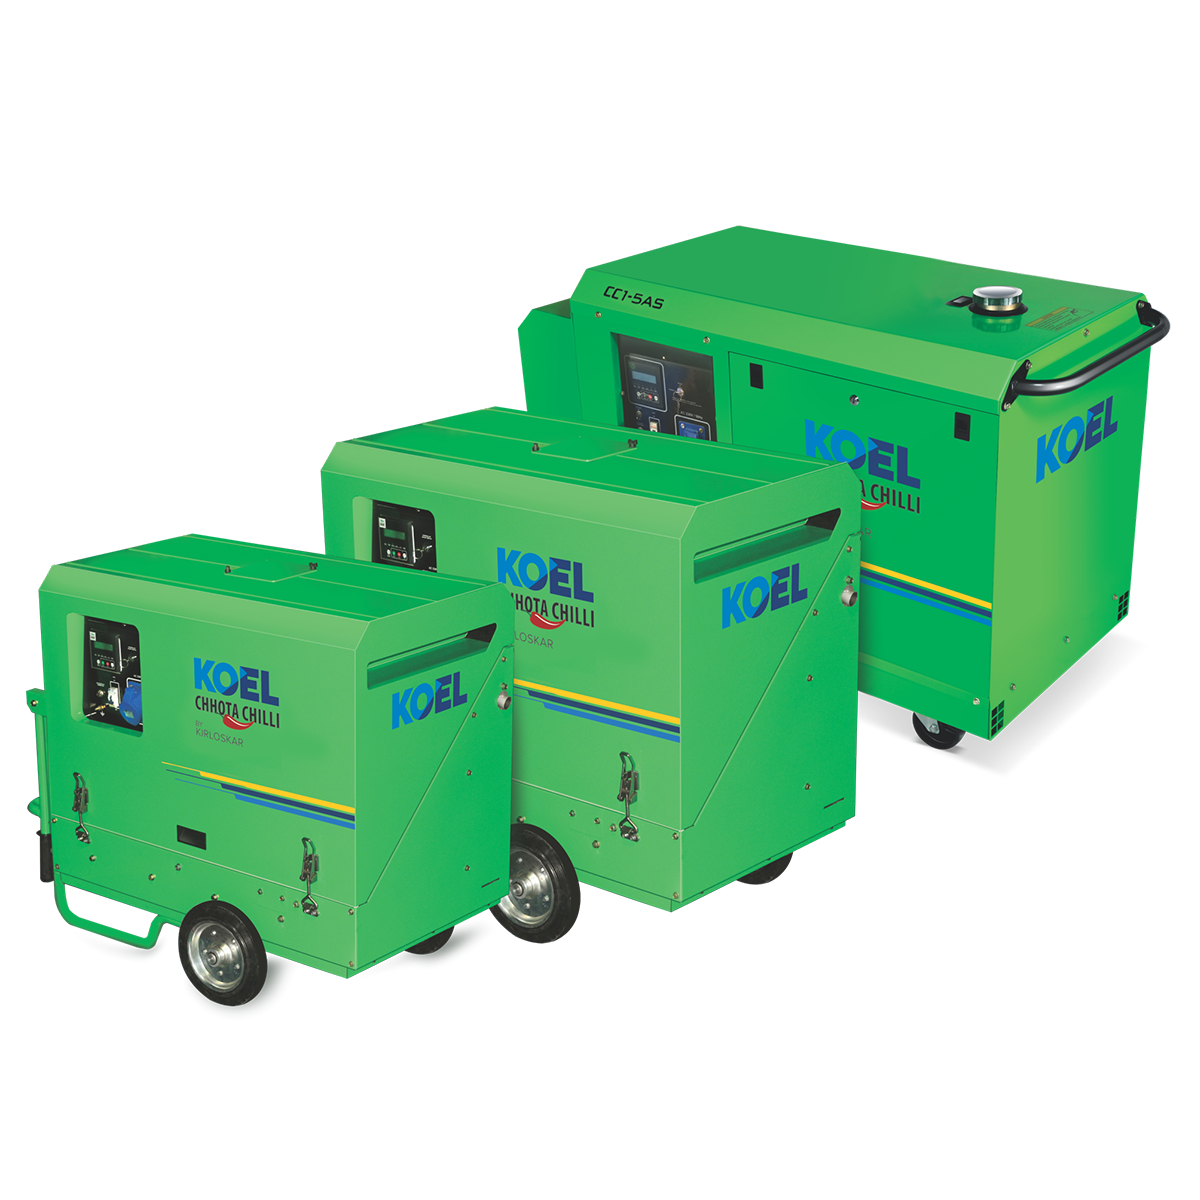 Kirloskar portable diesel generator koel chhota chilli portable kirloskar portable diesel generator koel chhota chilli portable diesel generator in the range of 3kva5kva by kirloskar are powered by high efficiency asfbconference2016 Image collections